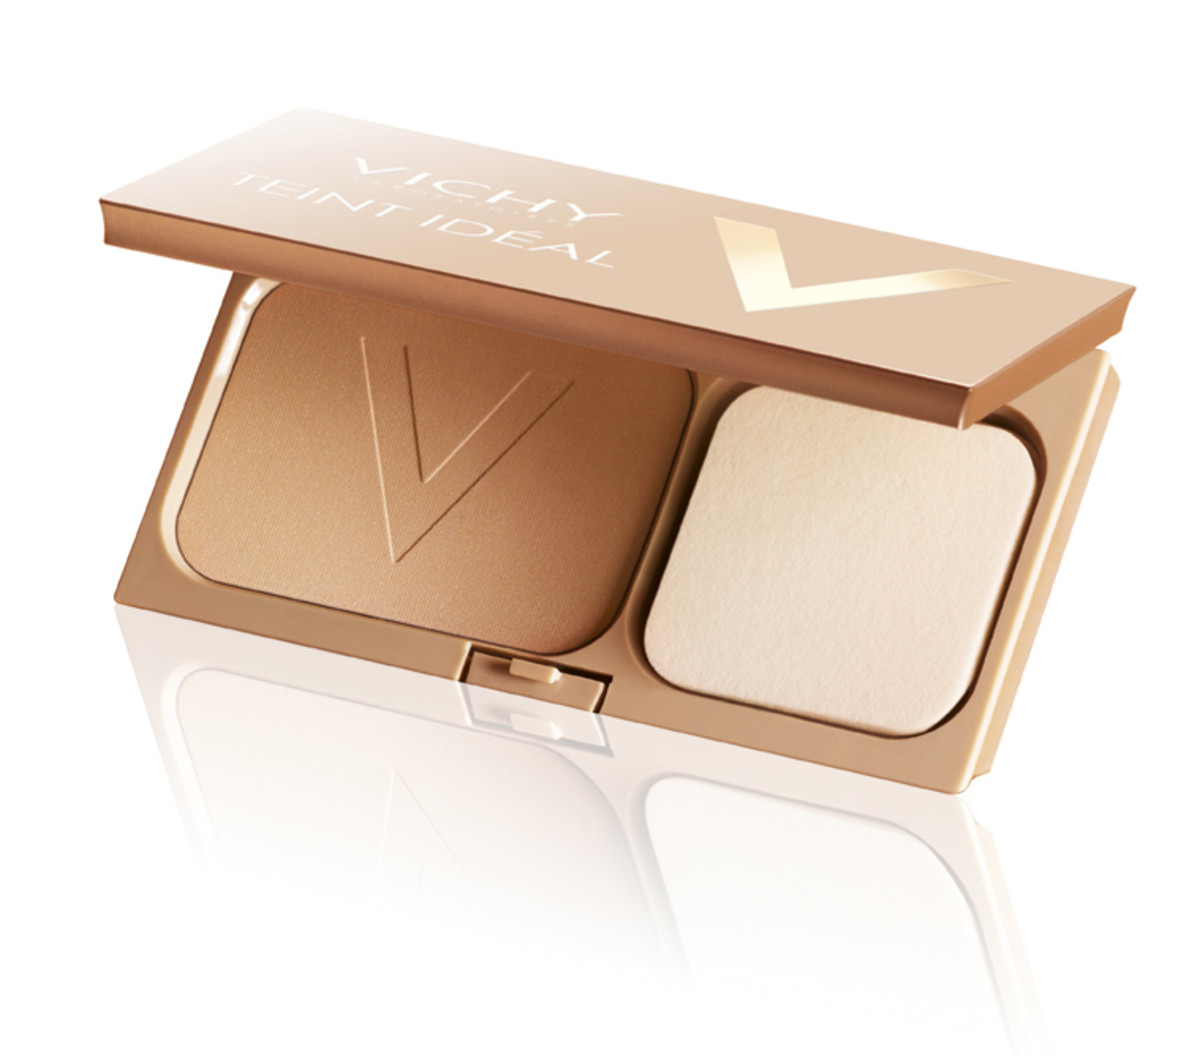 Vichy Teint Idéal Illuminating Powder Foundation